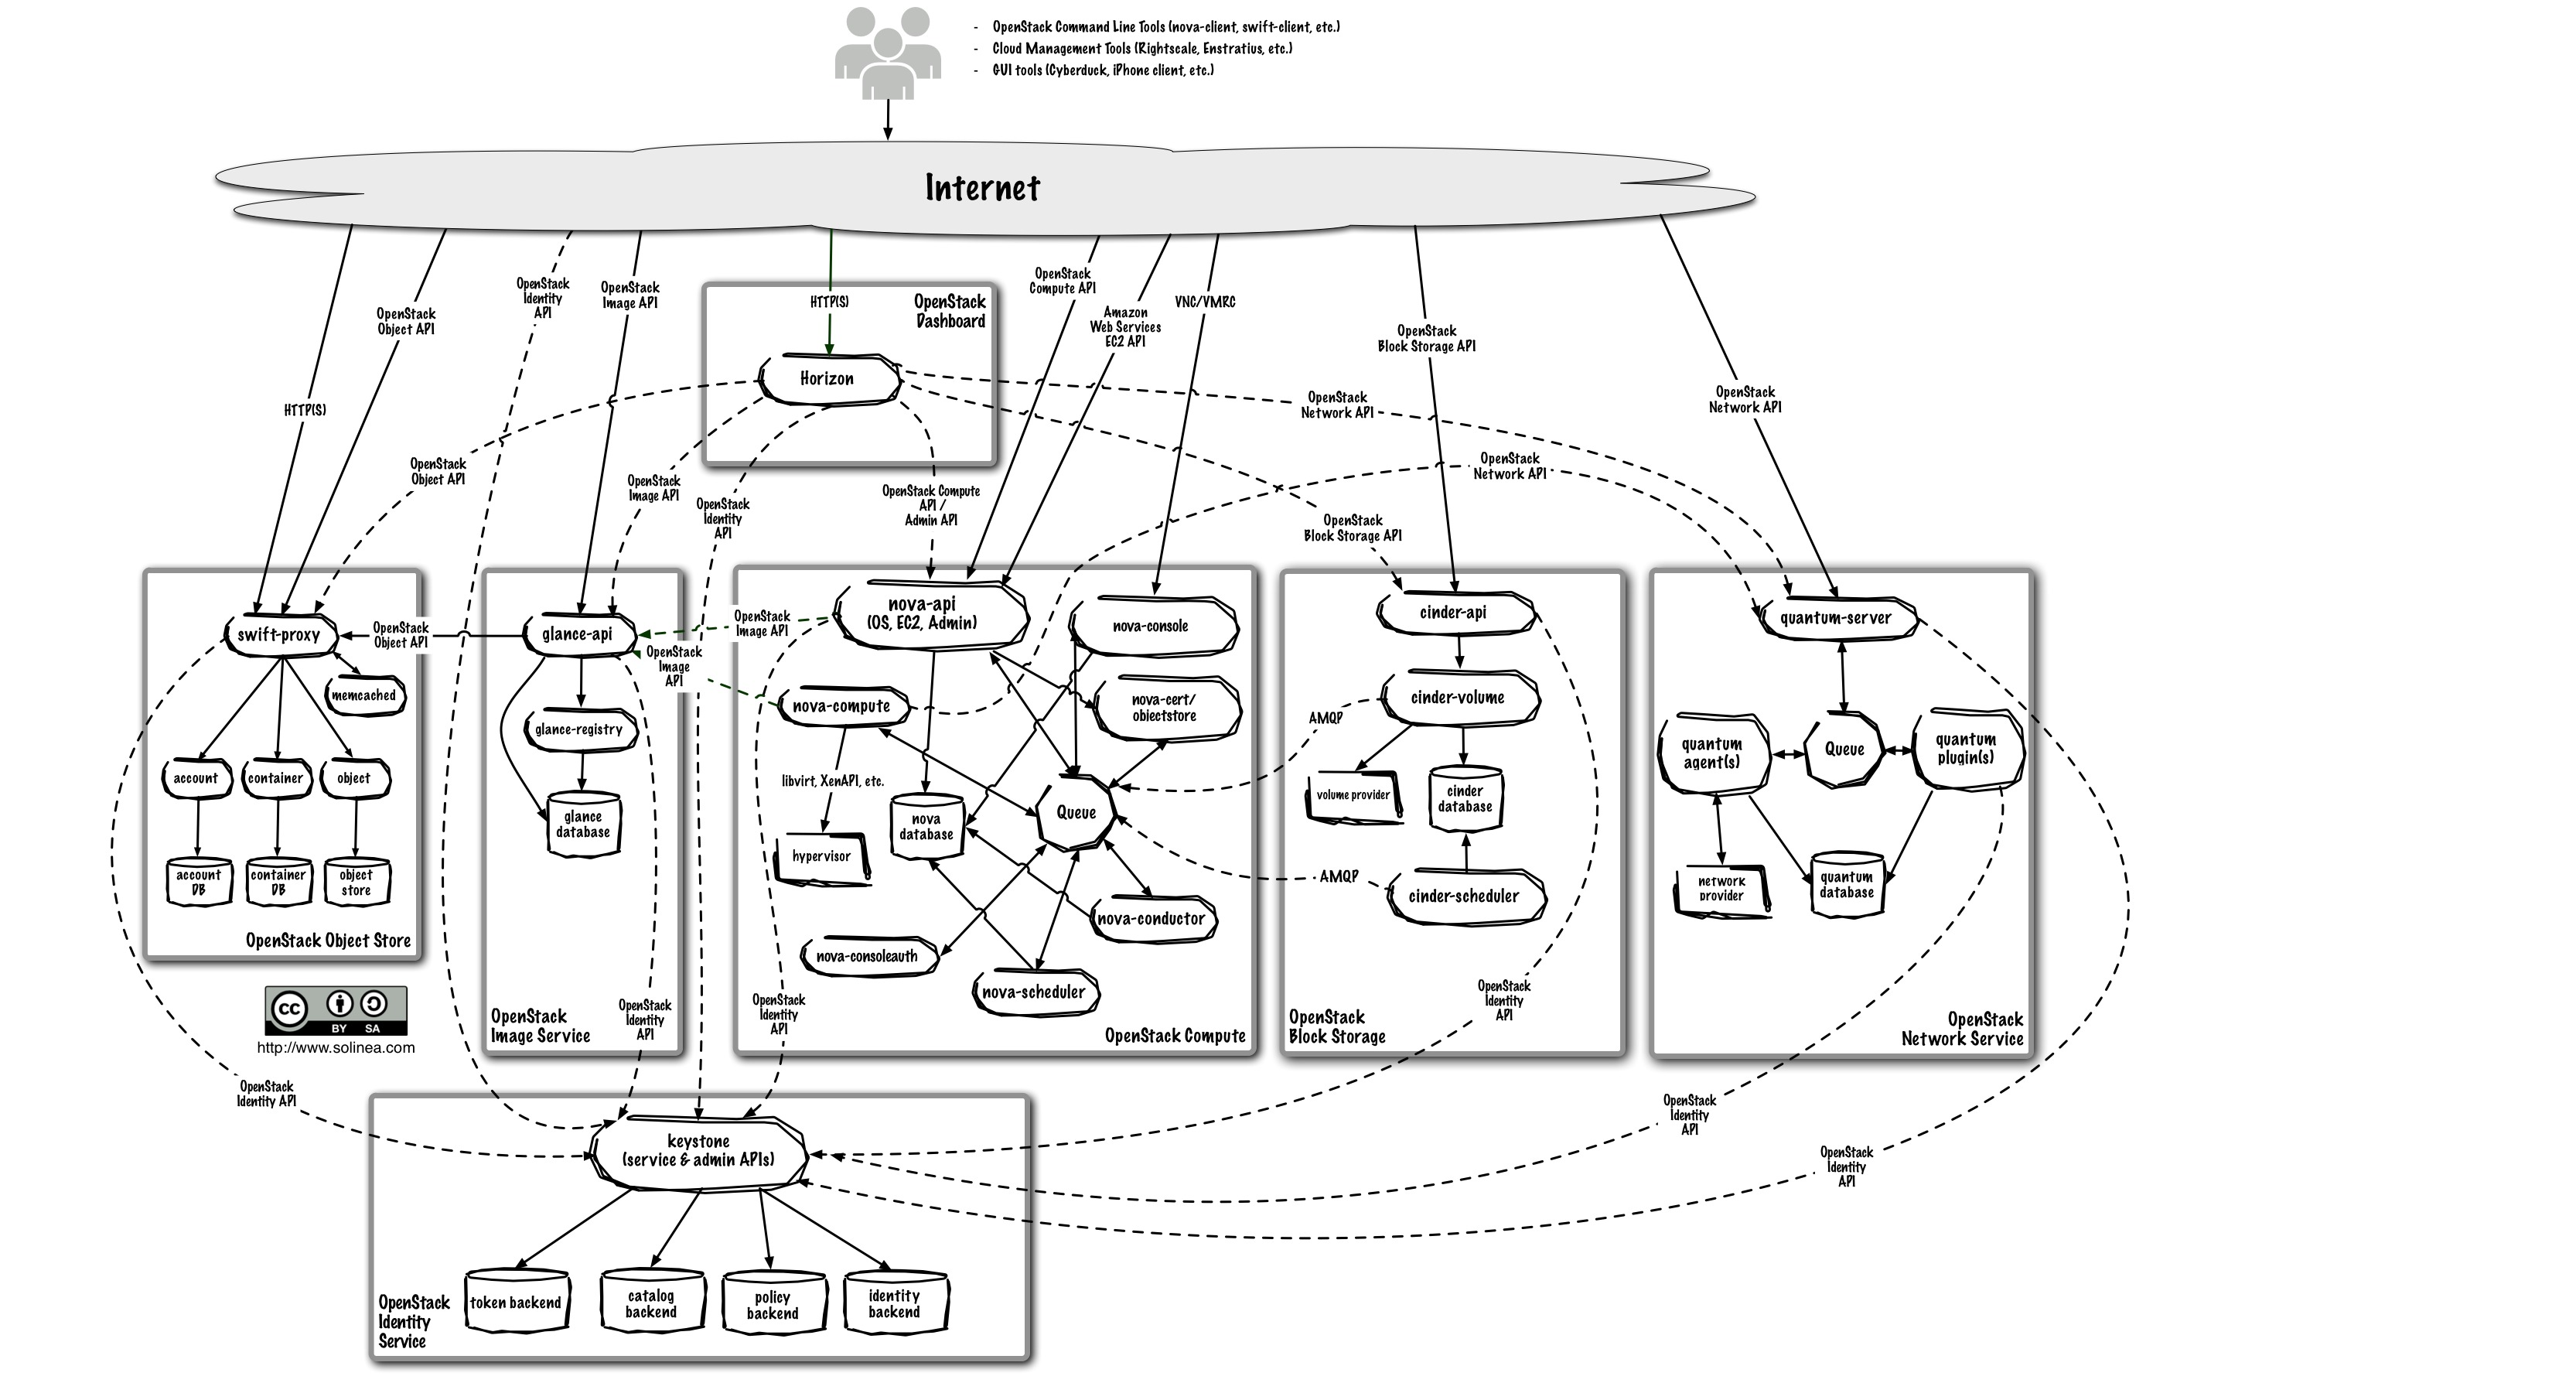 introduction to openstack ilearnstack : openstack architecture diagram - findchart.co